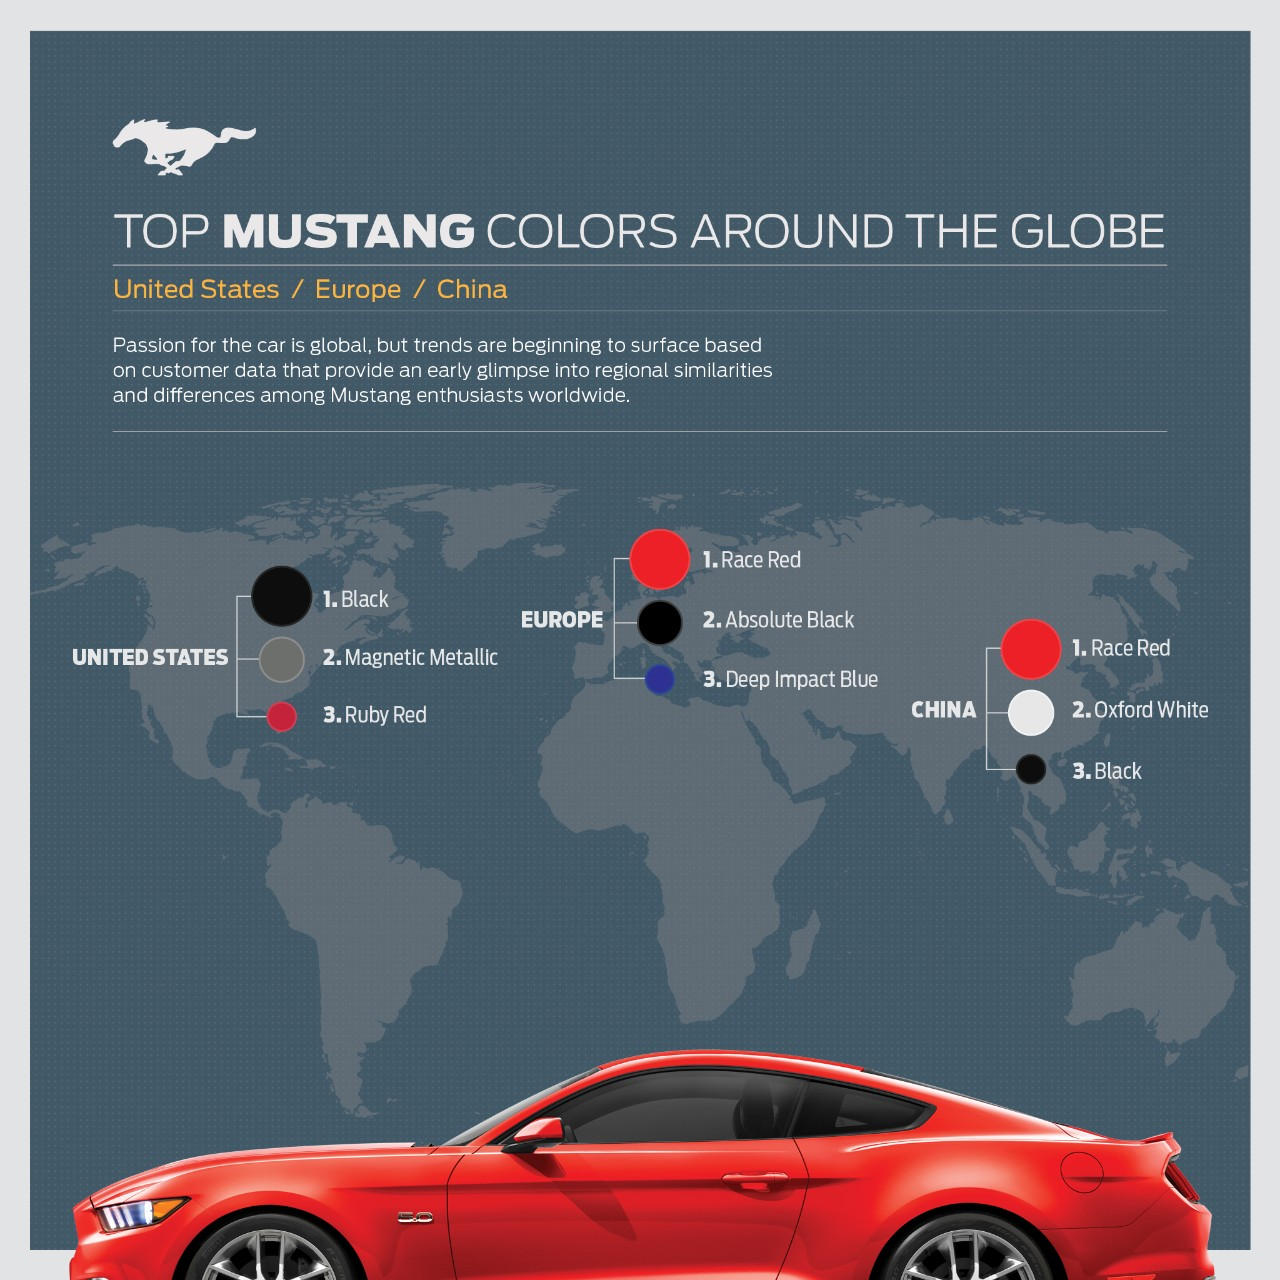 What Is The Most Popular Mustang Color